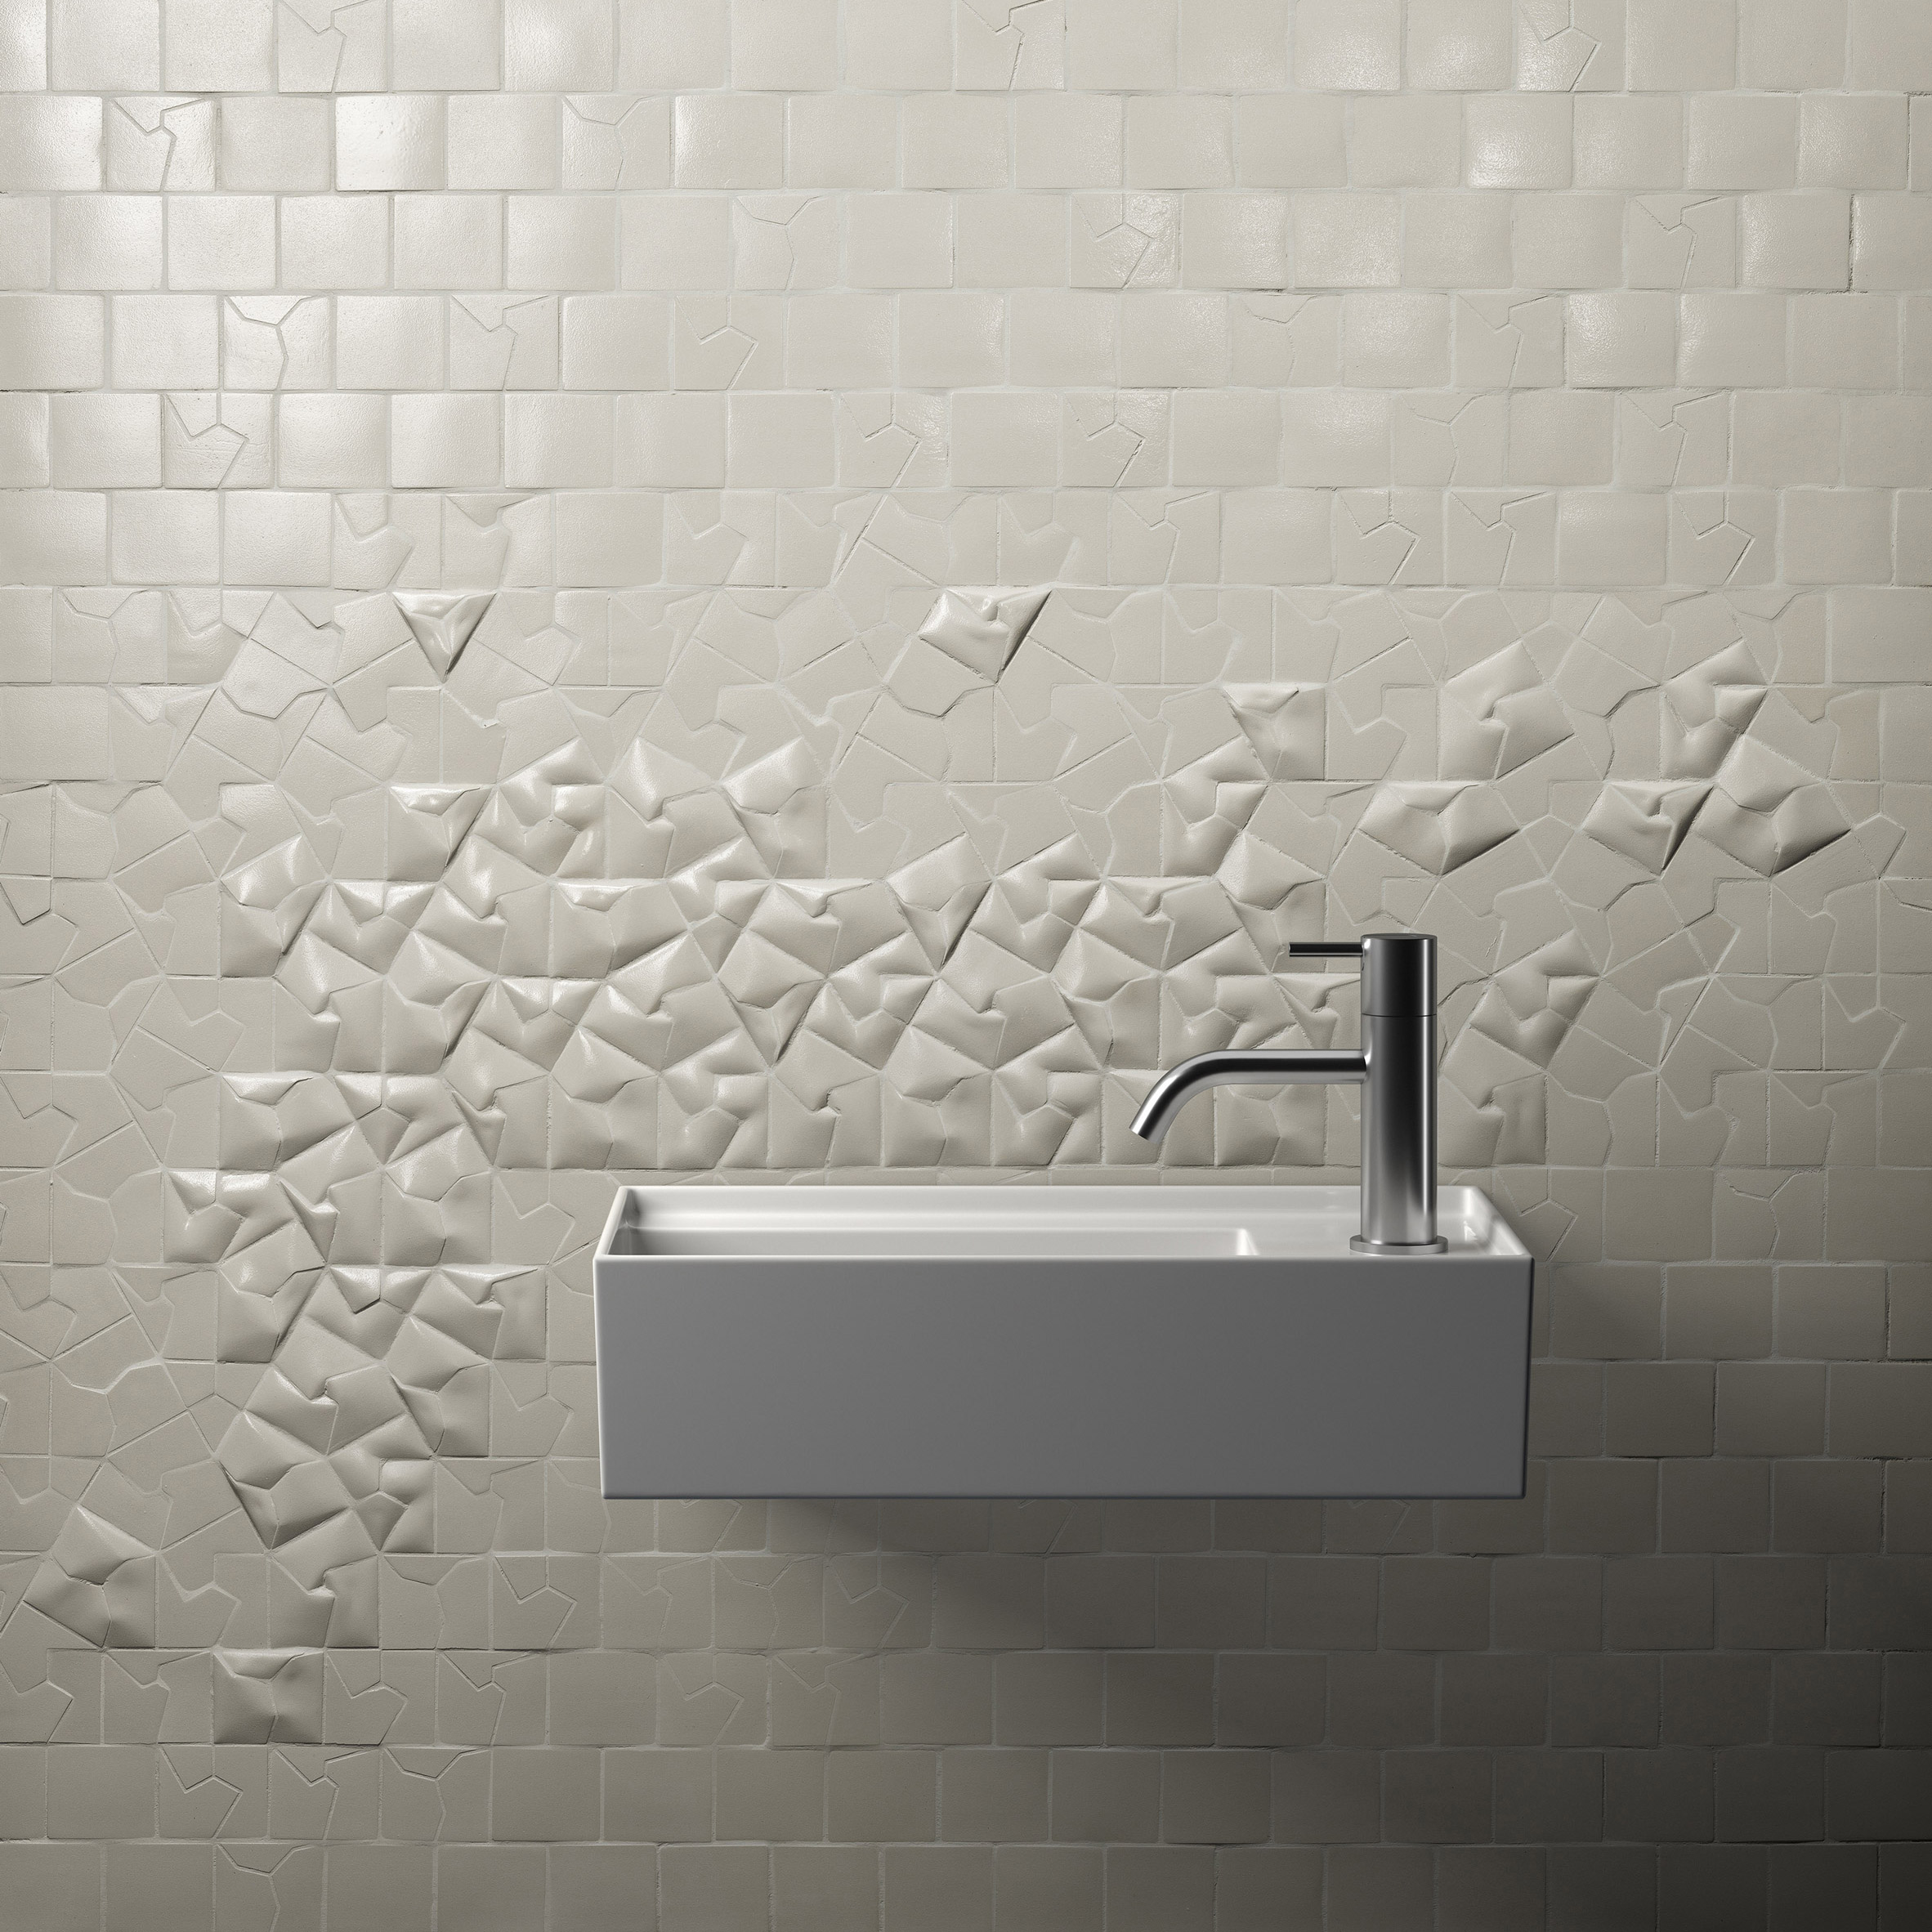 White Squar(e) tiles by Giovanni Barbieri on 3D wall